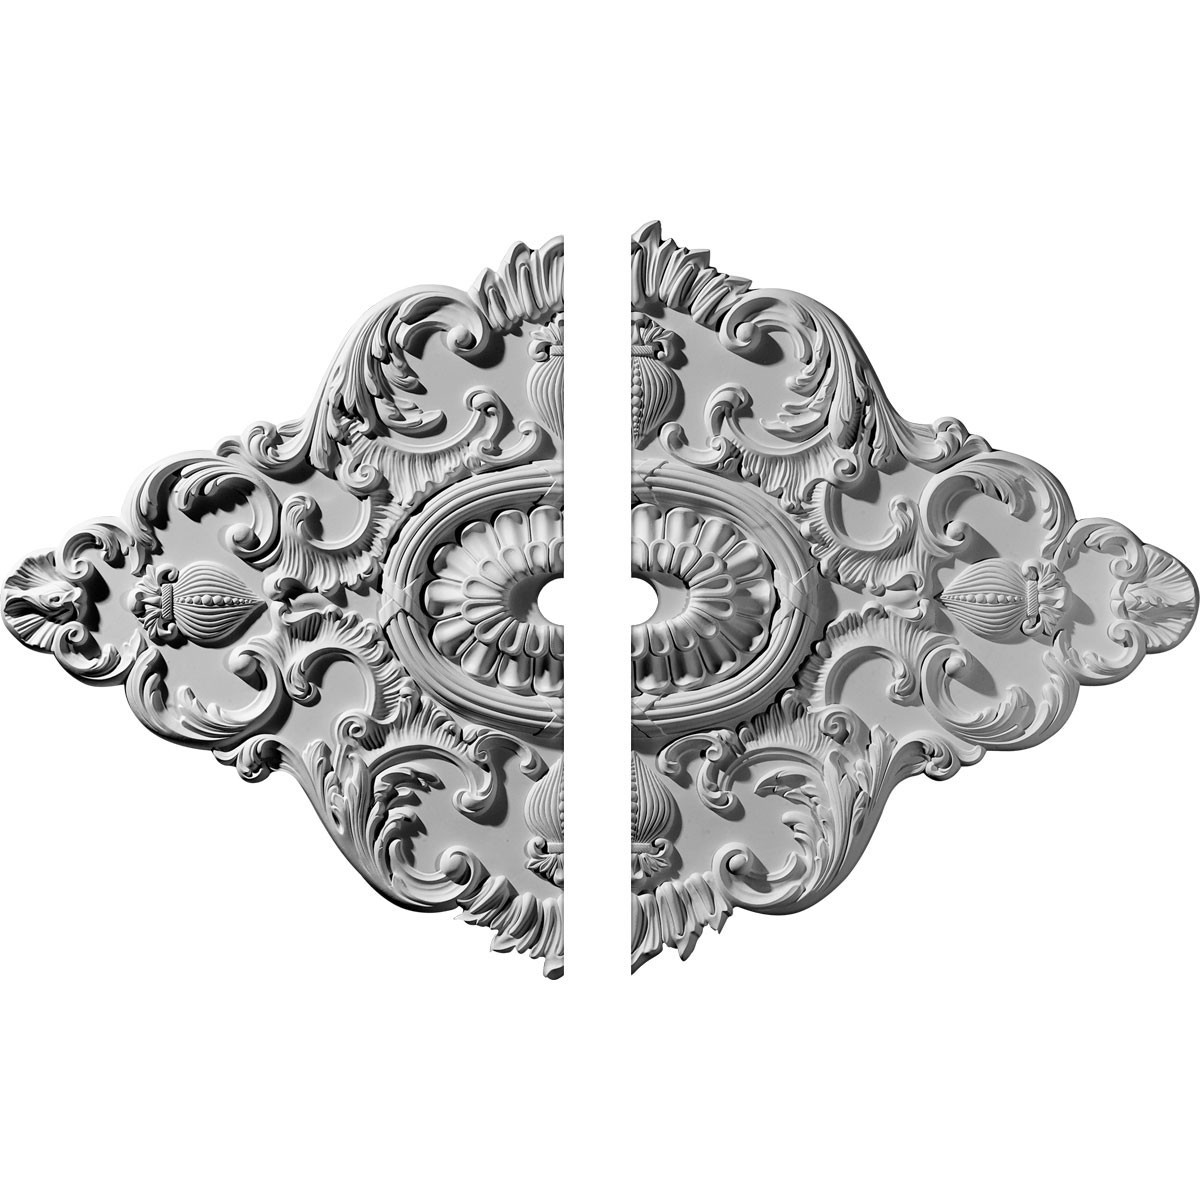 """EM-CM42X28AS2-03000 - 42 3/4""""W x 28 7/8""""H x 3""""ID x 1""""P Ashford Ceiling Medallion, Two Piece (Fits Canopies up to 3"""")"""